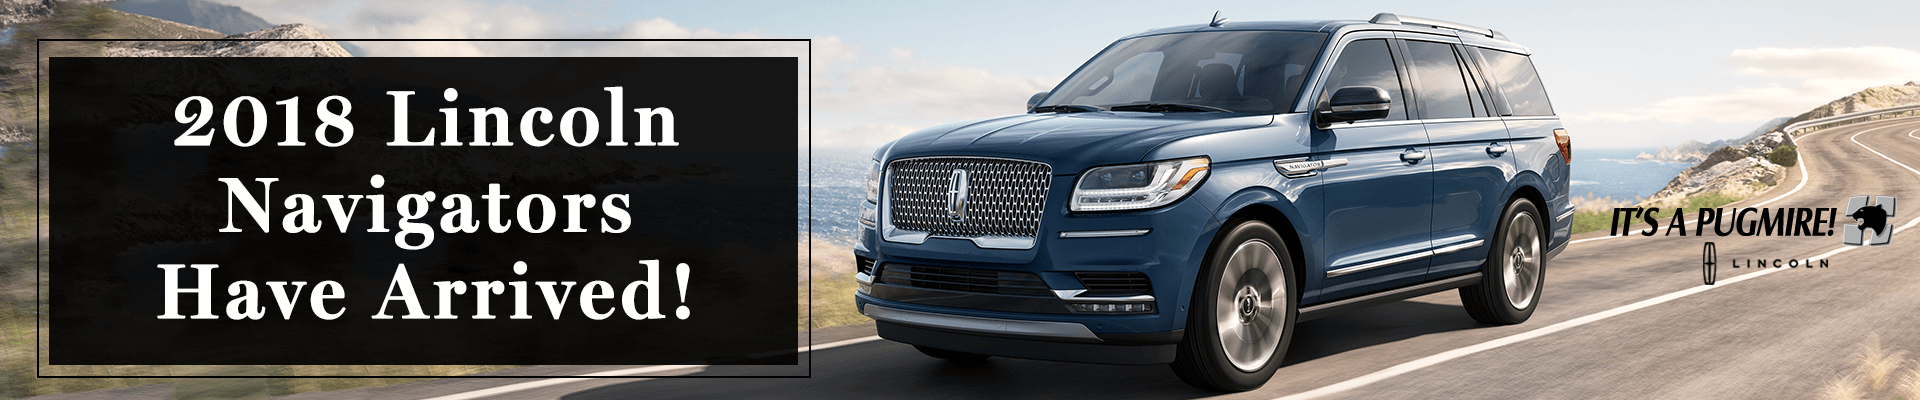 Lease your 2018 Lincoln Navigator today